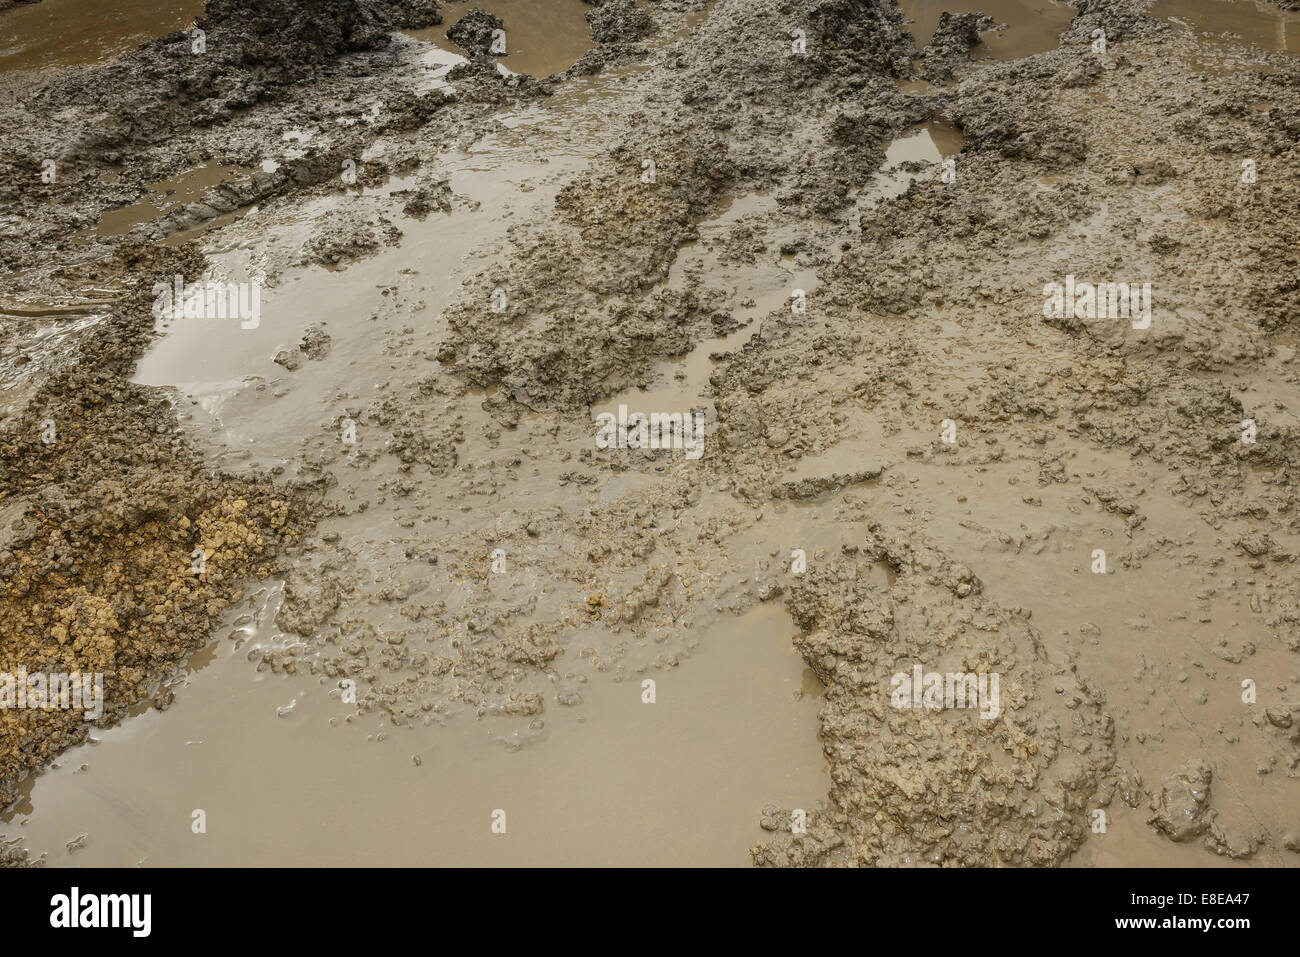 Mud on a building site - Stock Image